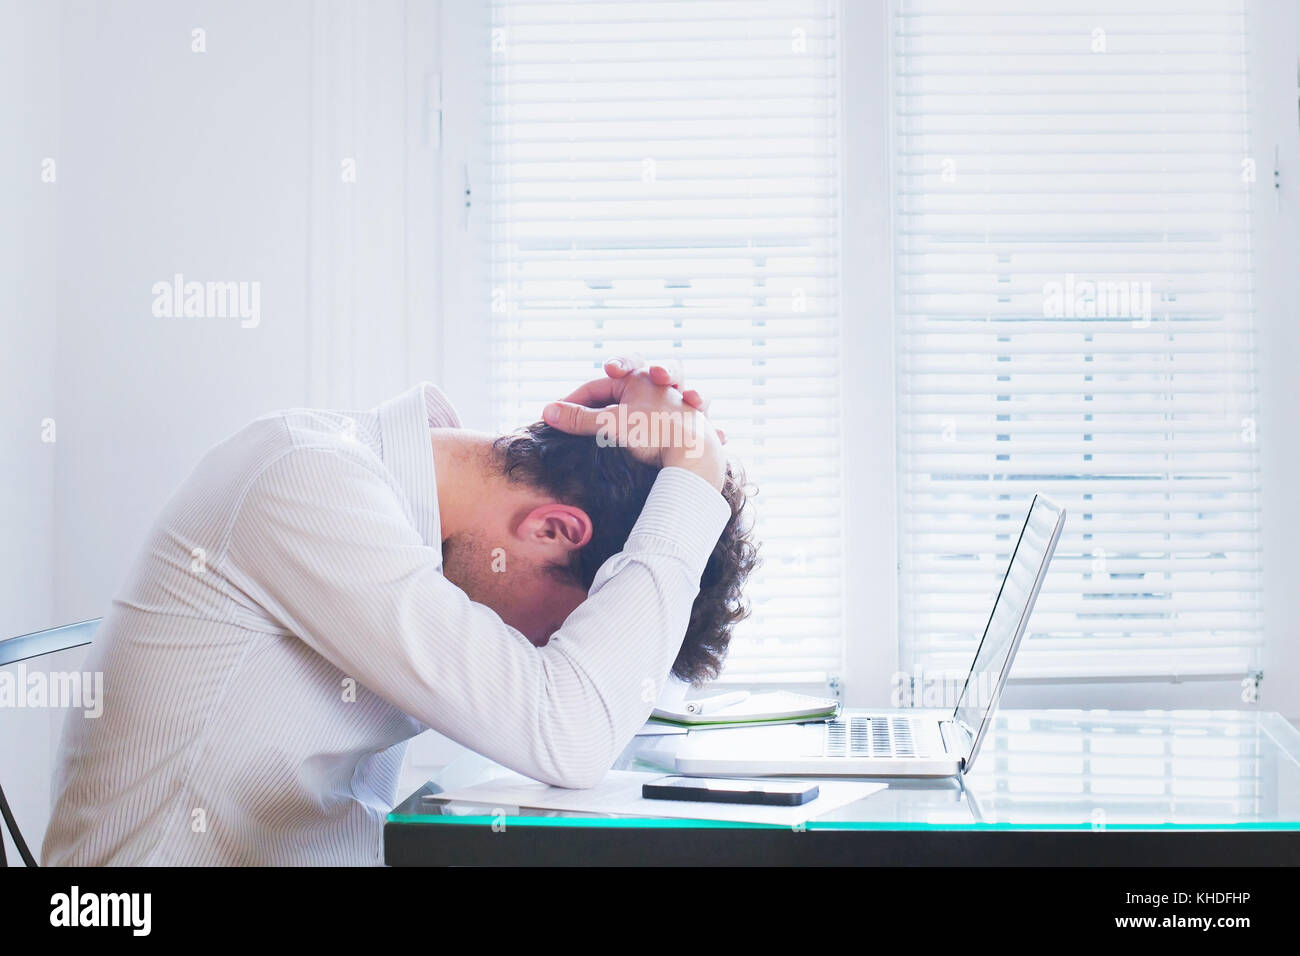 emotional burnout, tired businessman at workplace in the office, stress concept - Stock Image